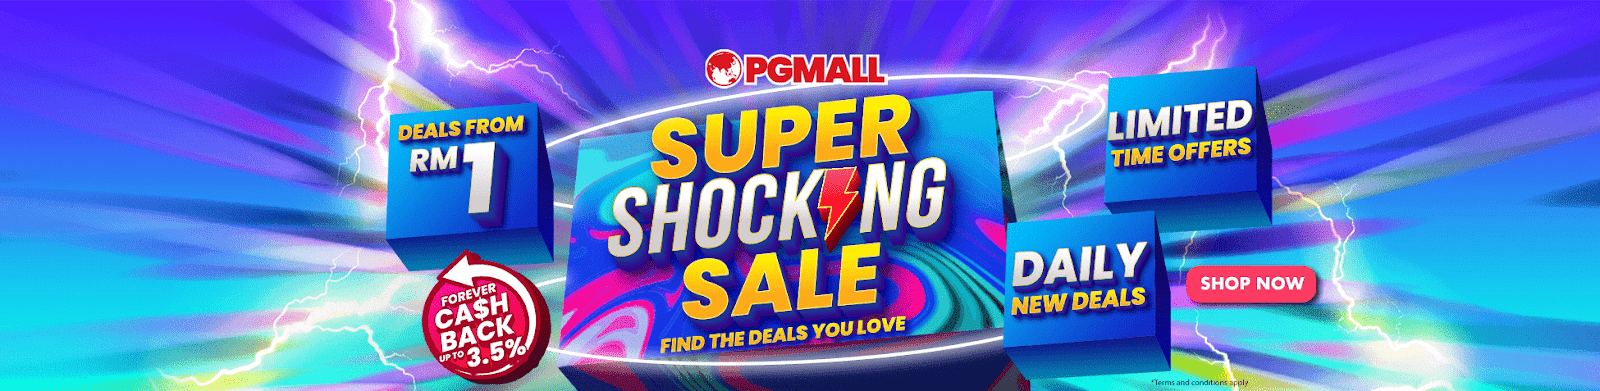 super shocking sale pgmall